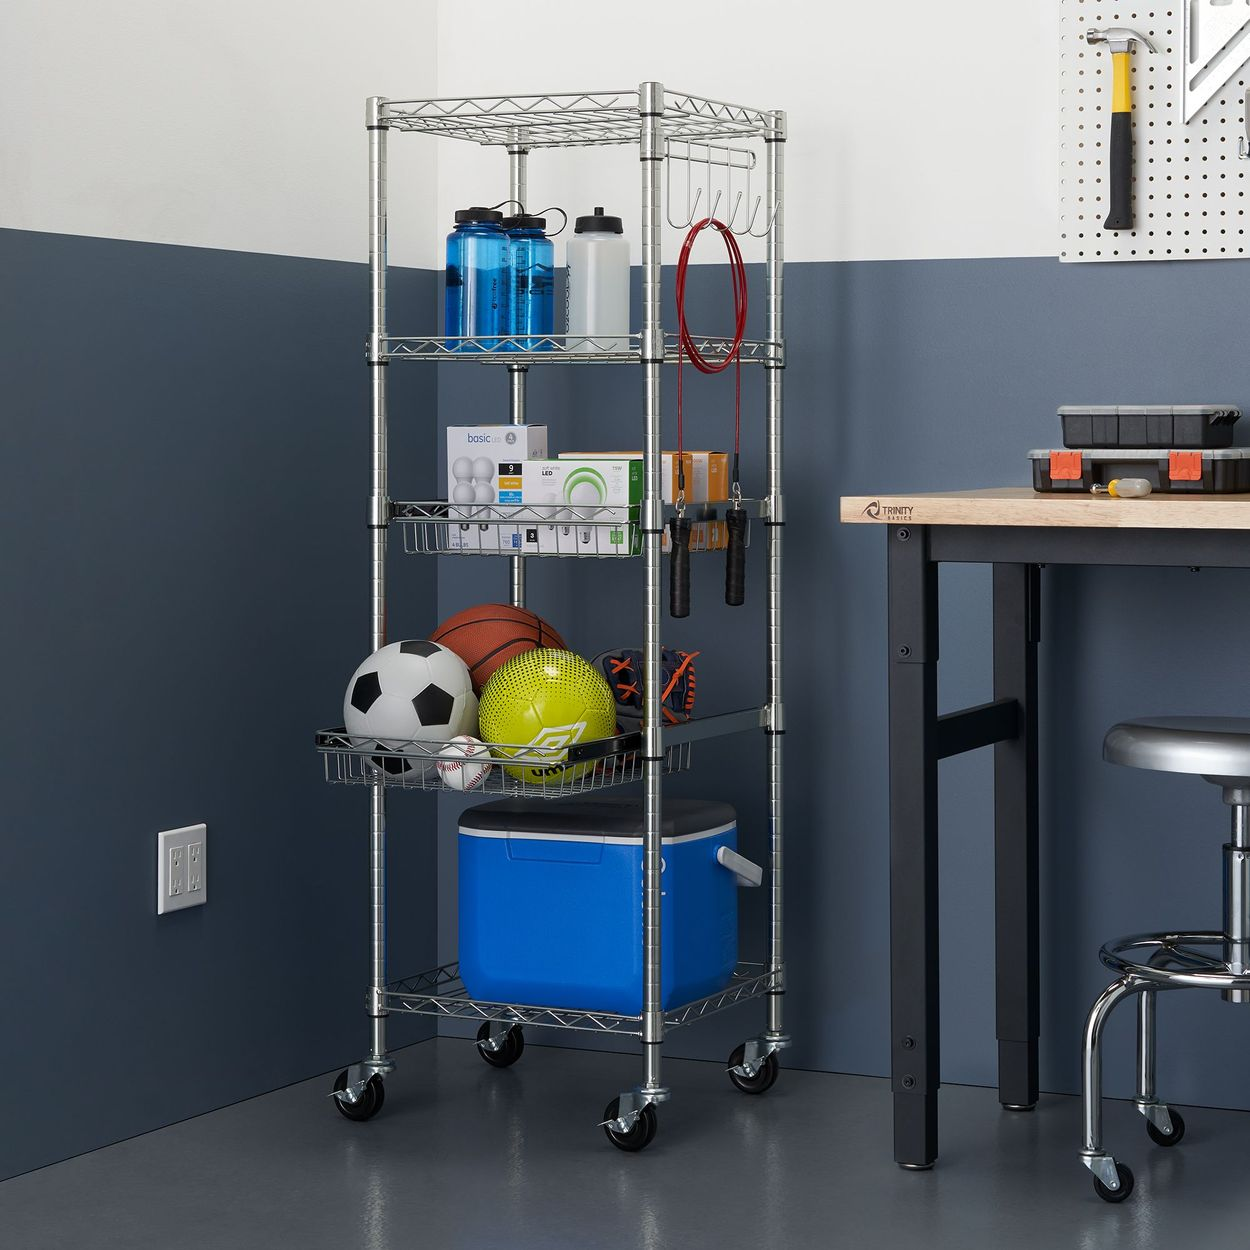 TRINITY Pantry rack with garage and play things used in the garage